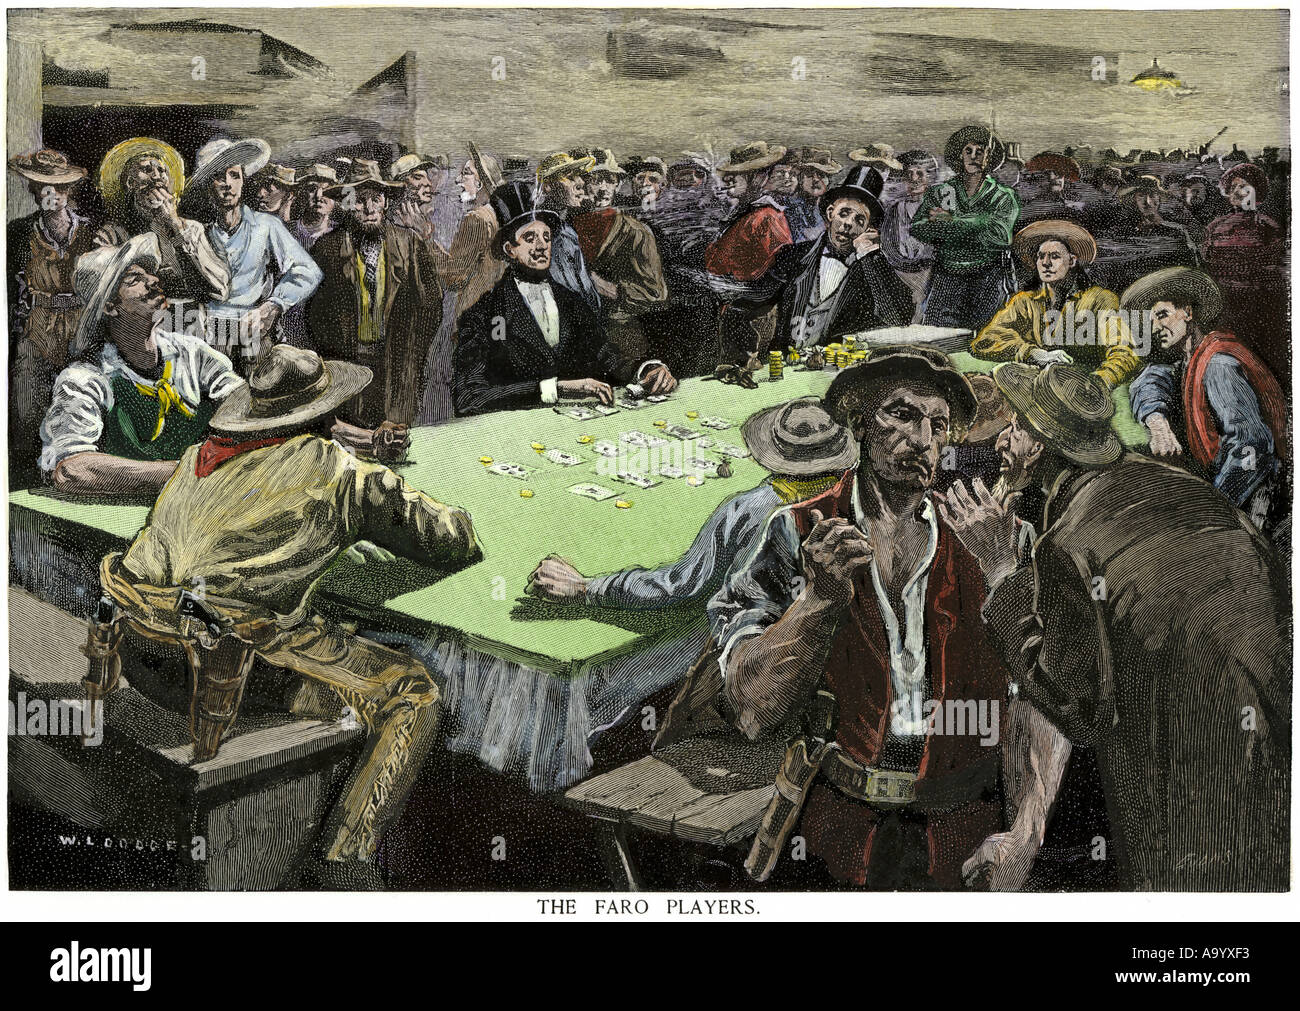 California Gold Rush miners in a gambling saloon playing faro. Hand-colored woodcut - Stock Image